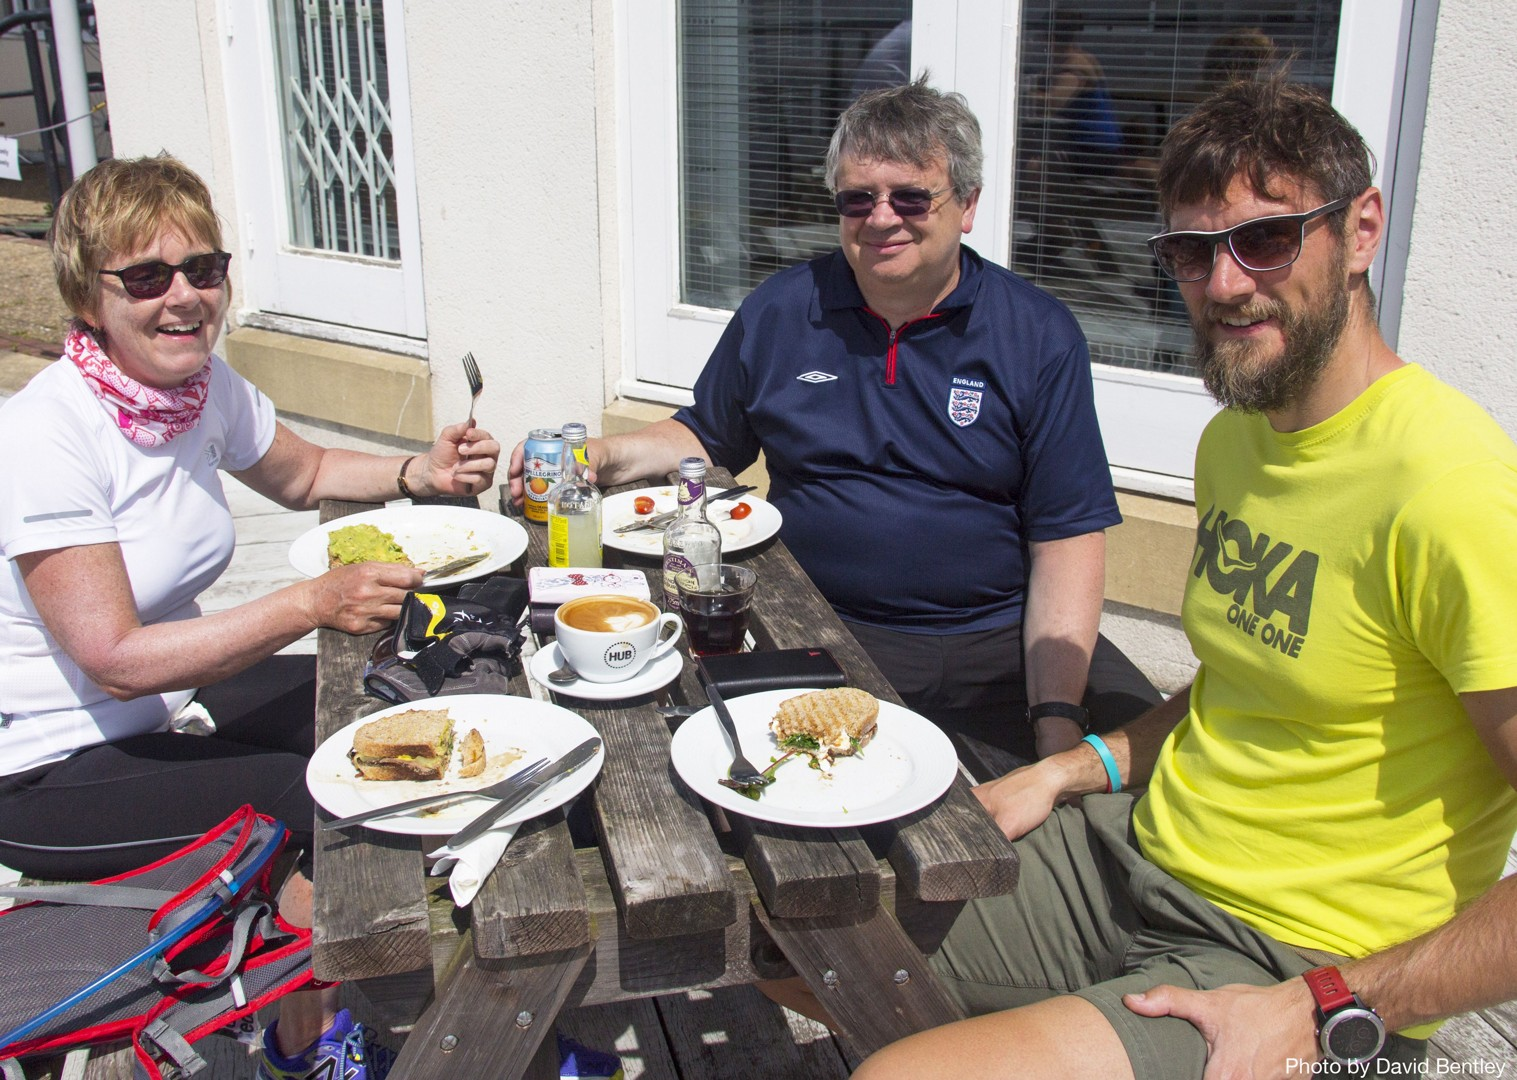 Self-Guided-Leisure-Cycling-Holiday-Hadrians-Cycleway-UK-lunch-break.jpg - UK - Hadrian's Cycleway - 2 Days Cycling - Self-Guided Leisure Cycling Holiday - Leisure Cycling